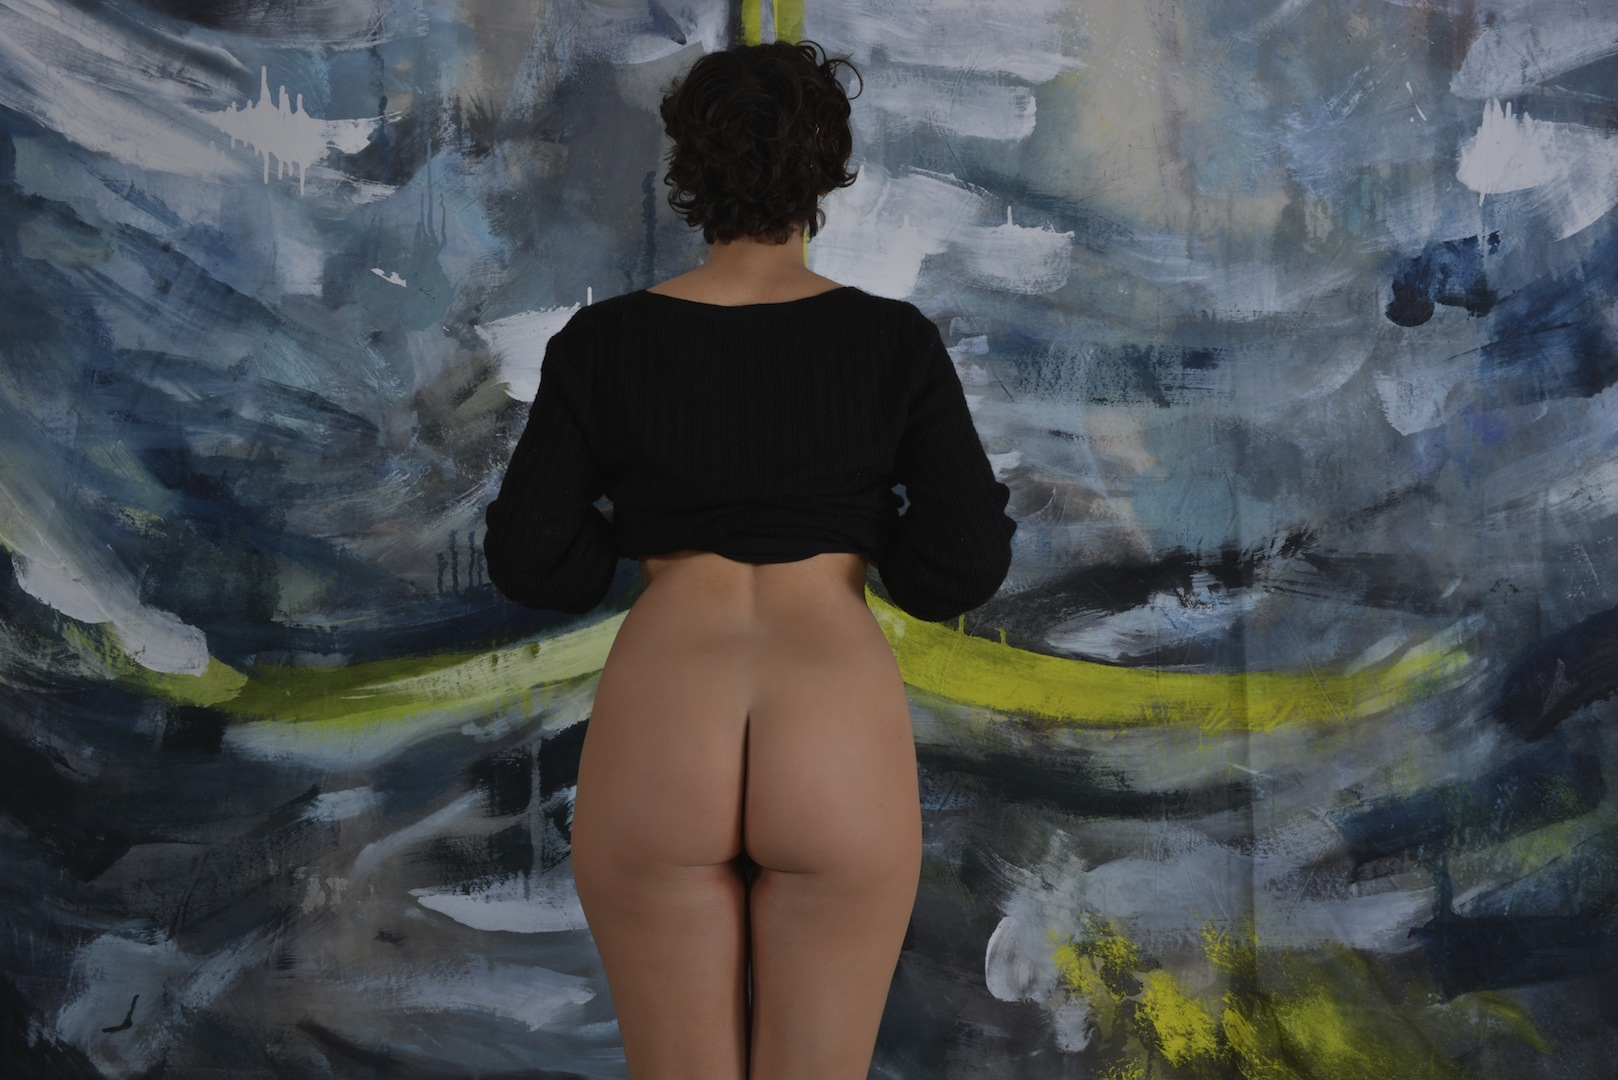 Peinture-photo-performance-yoko-ono-fesse